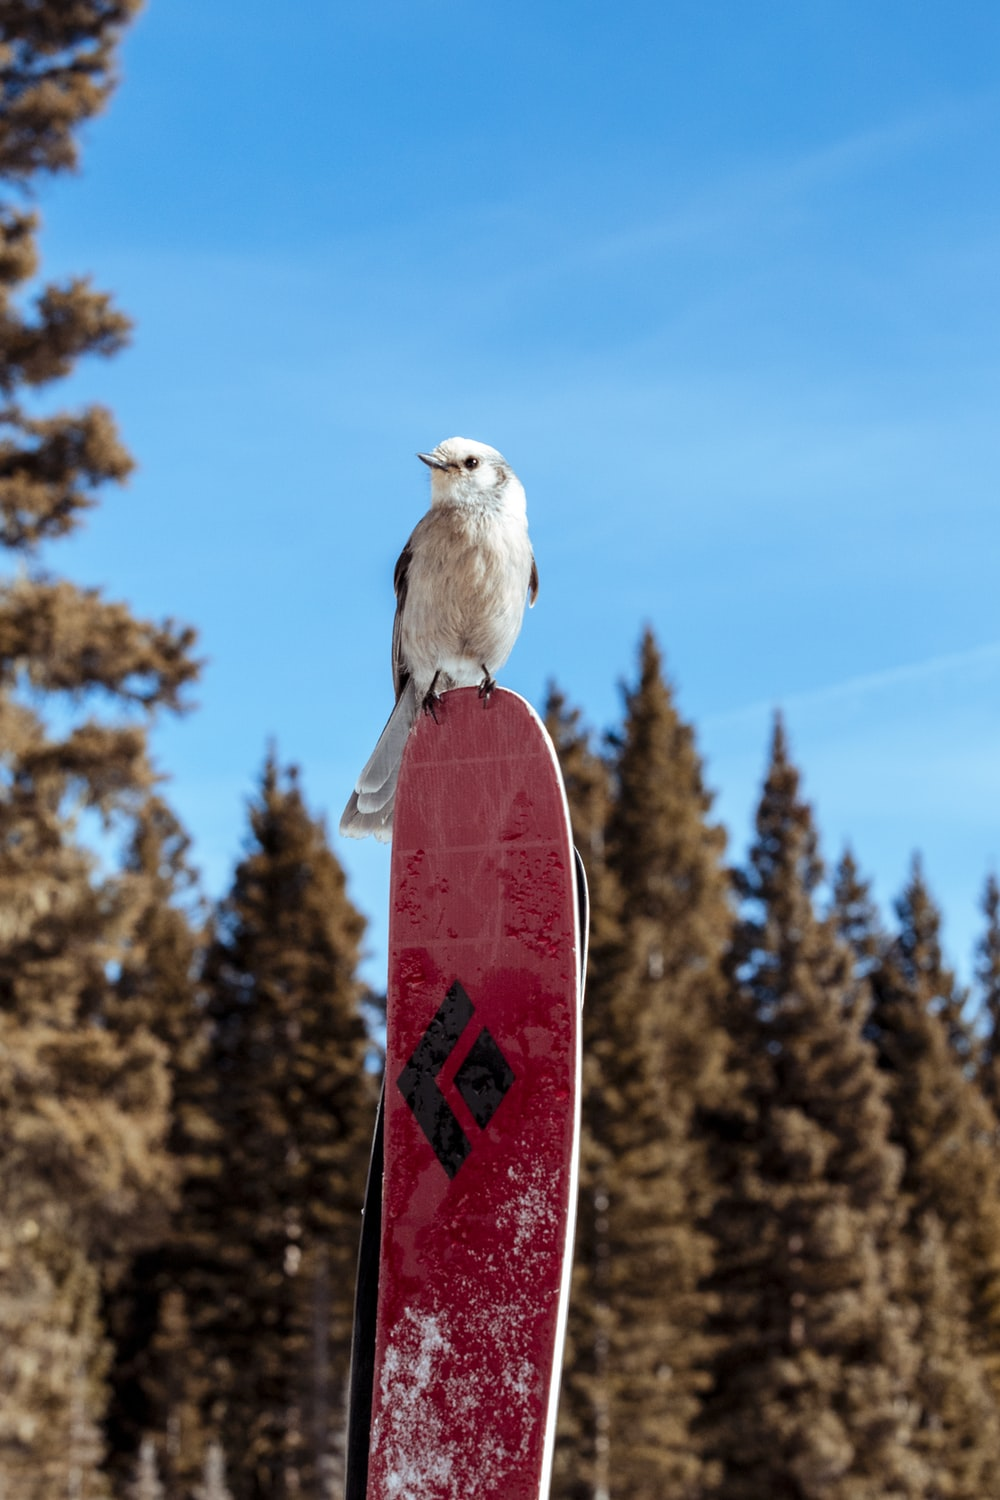 white and brown bird on red and white snow board